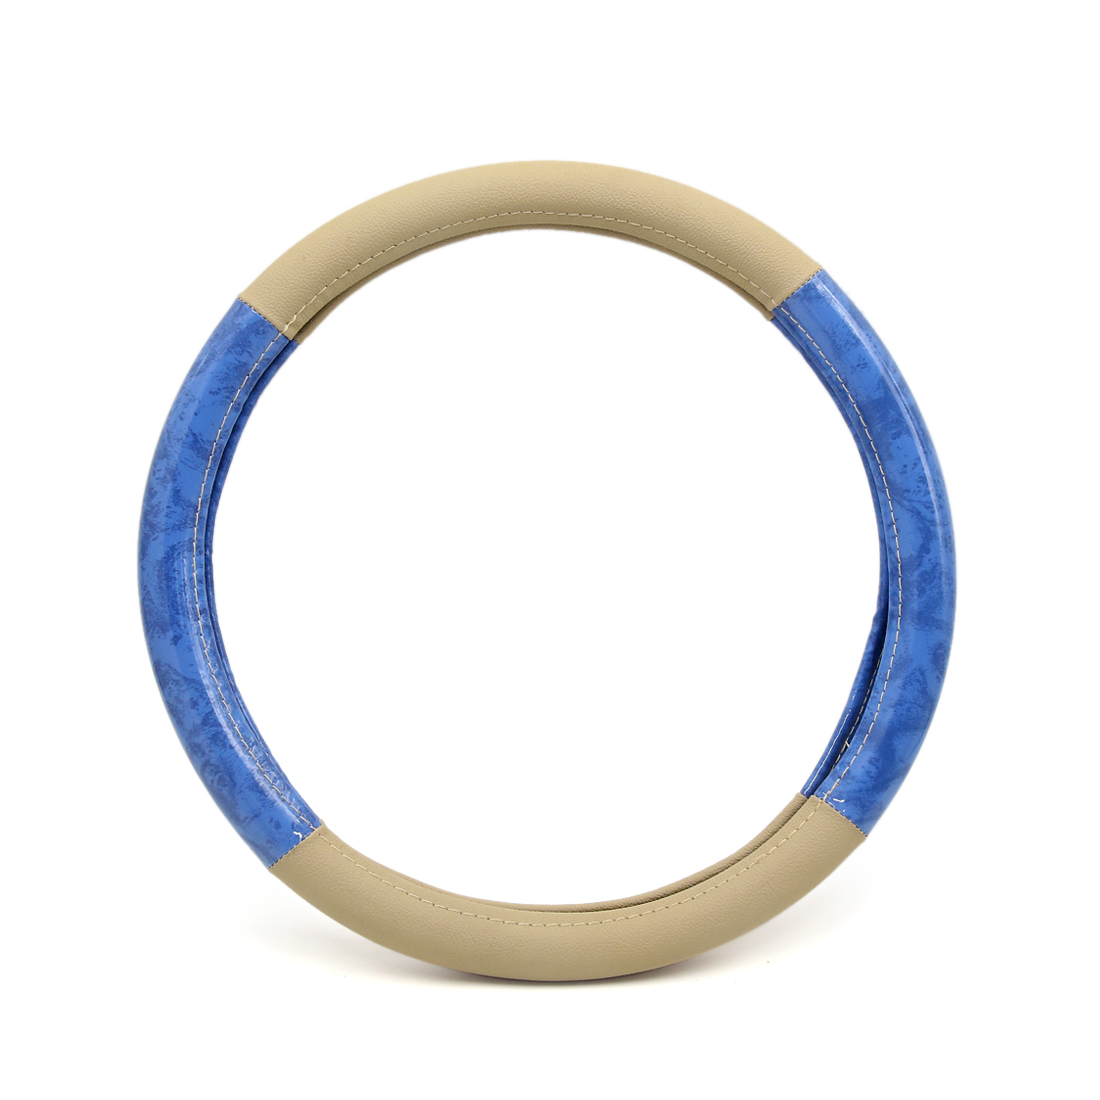 Universal Blue Beige Faux Leather 15 inch Car Truck Steering Wheel Cover - image 4 of 4